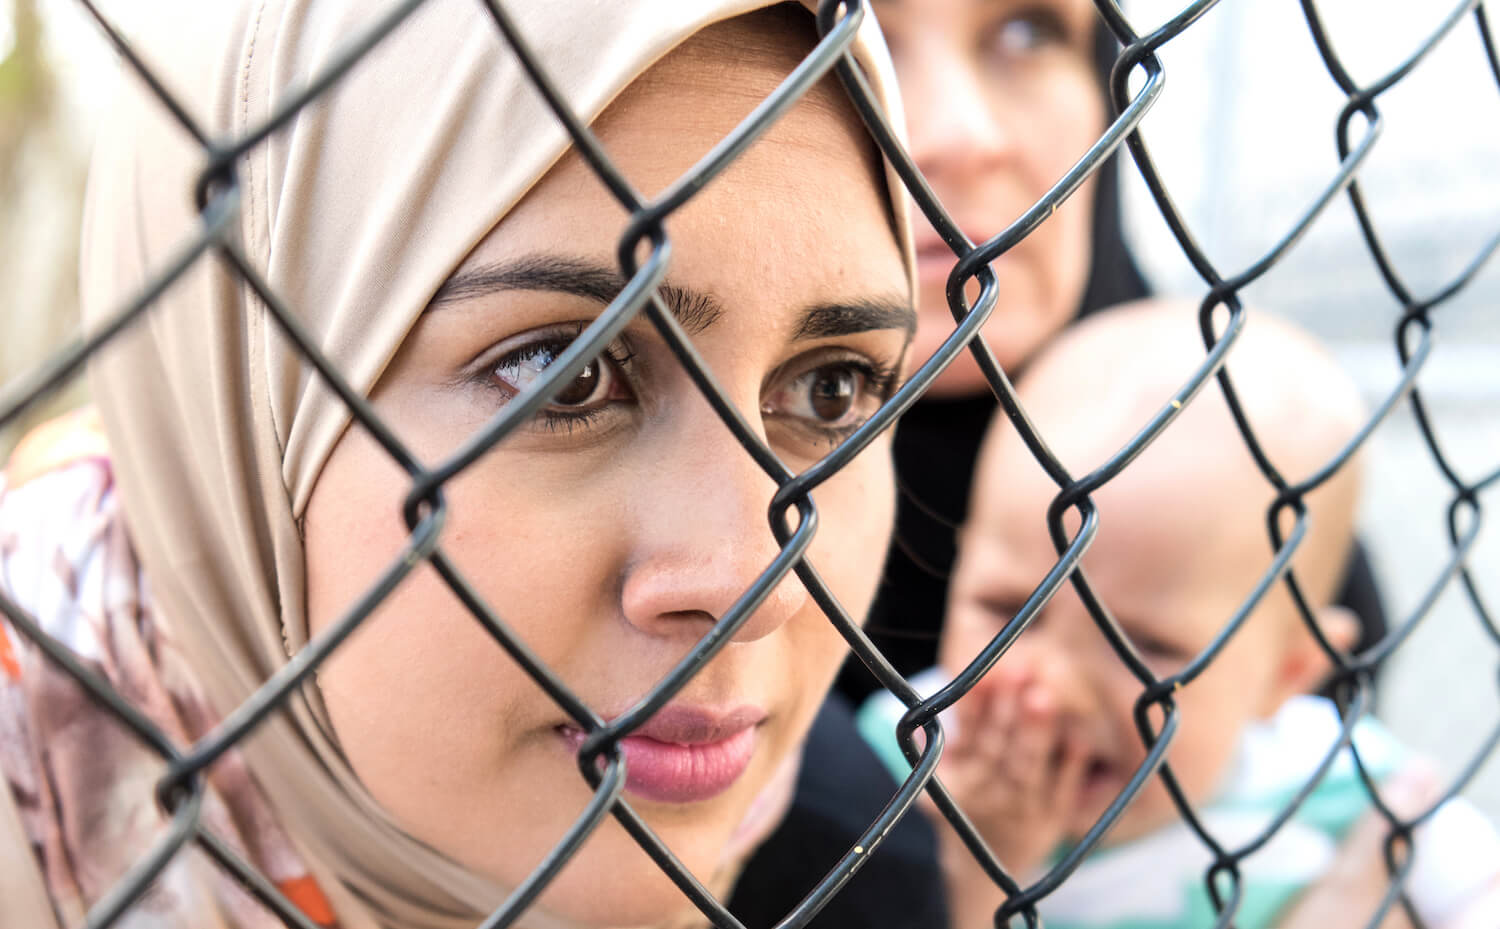 Somber Middle eastern women looking through a fence; one is holding a crying baby